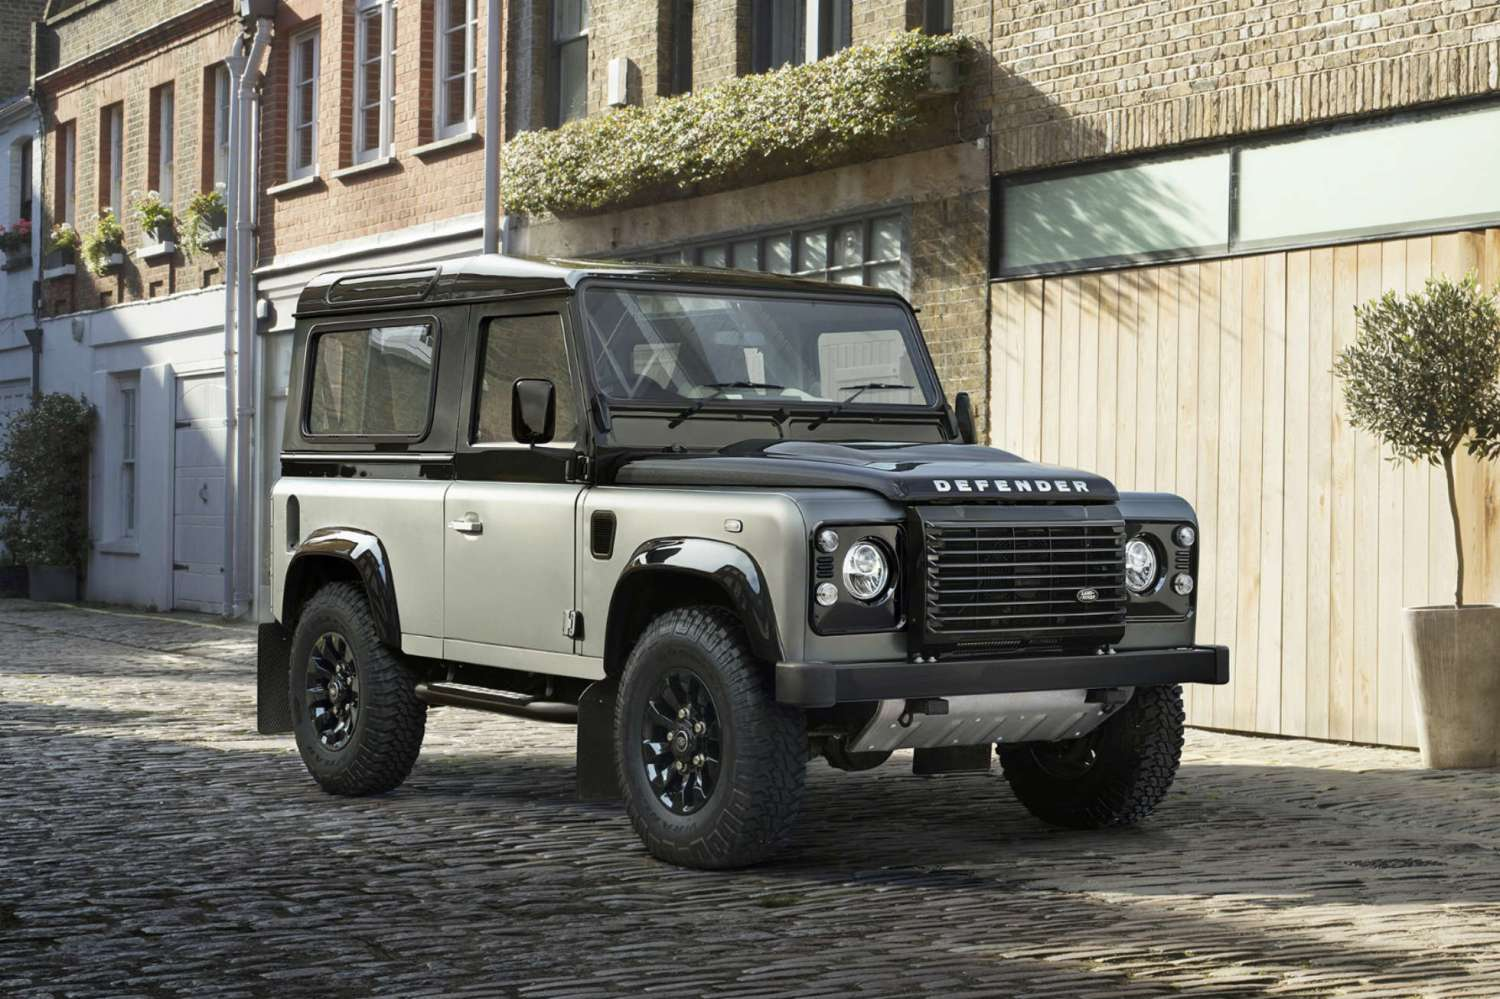 Meet Land Rover's £61,845 Defender run-out special edition